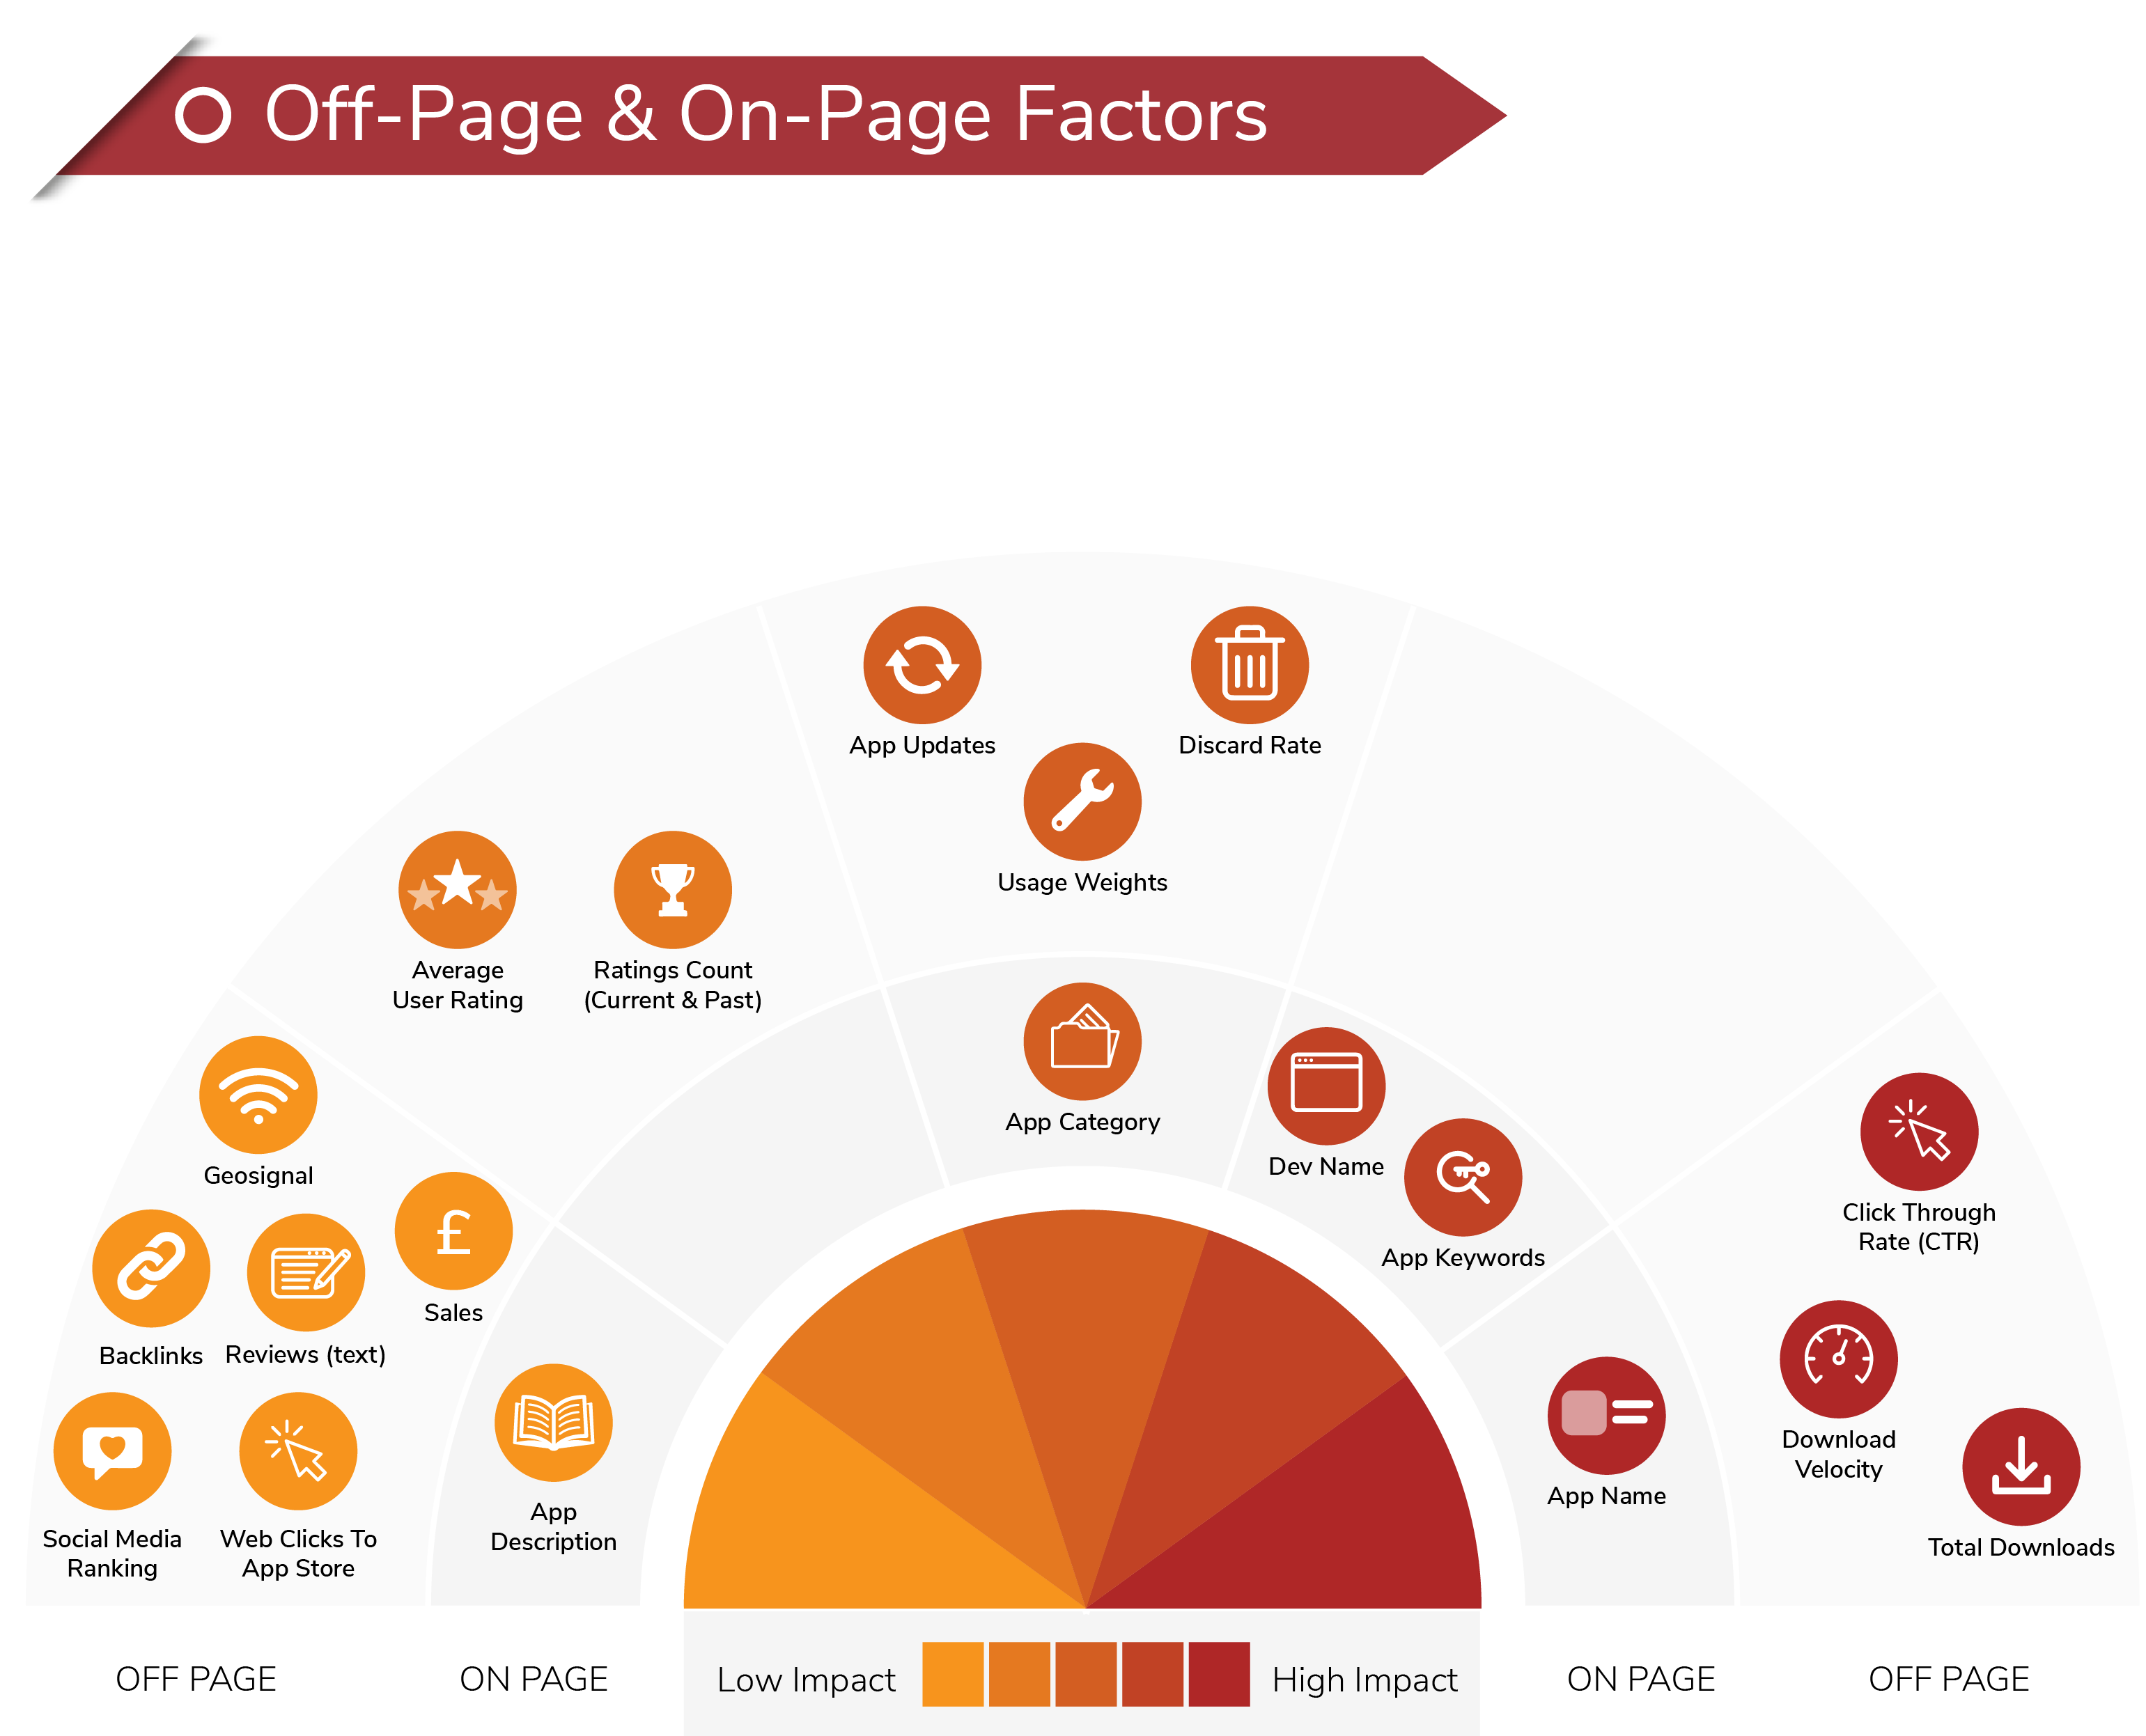 Off-Page and On-Page Factors